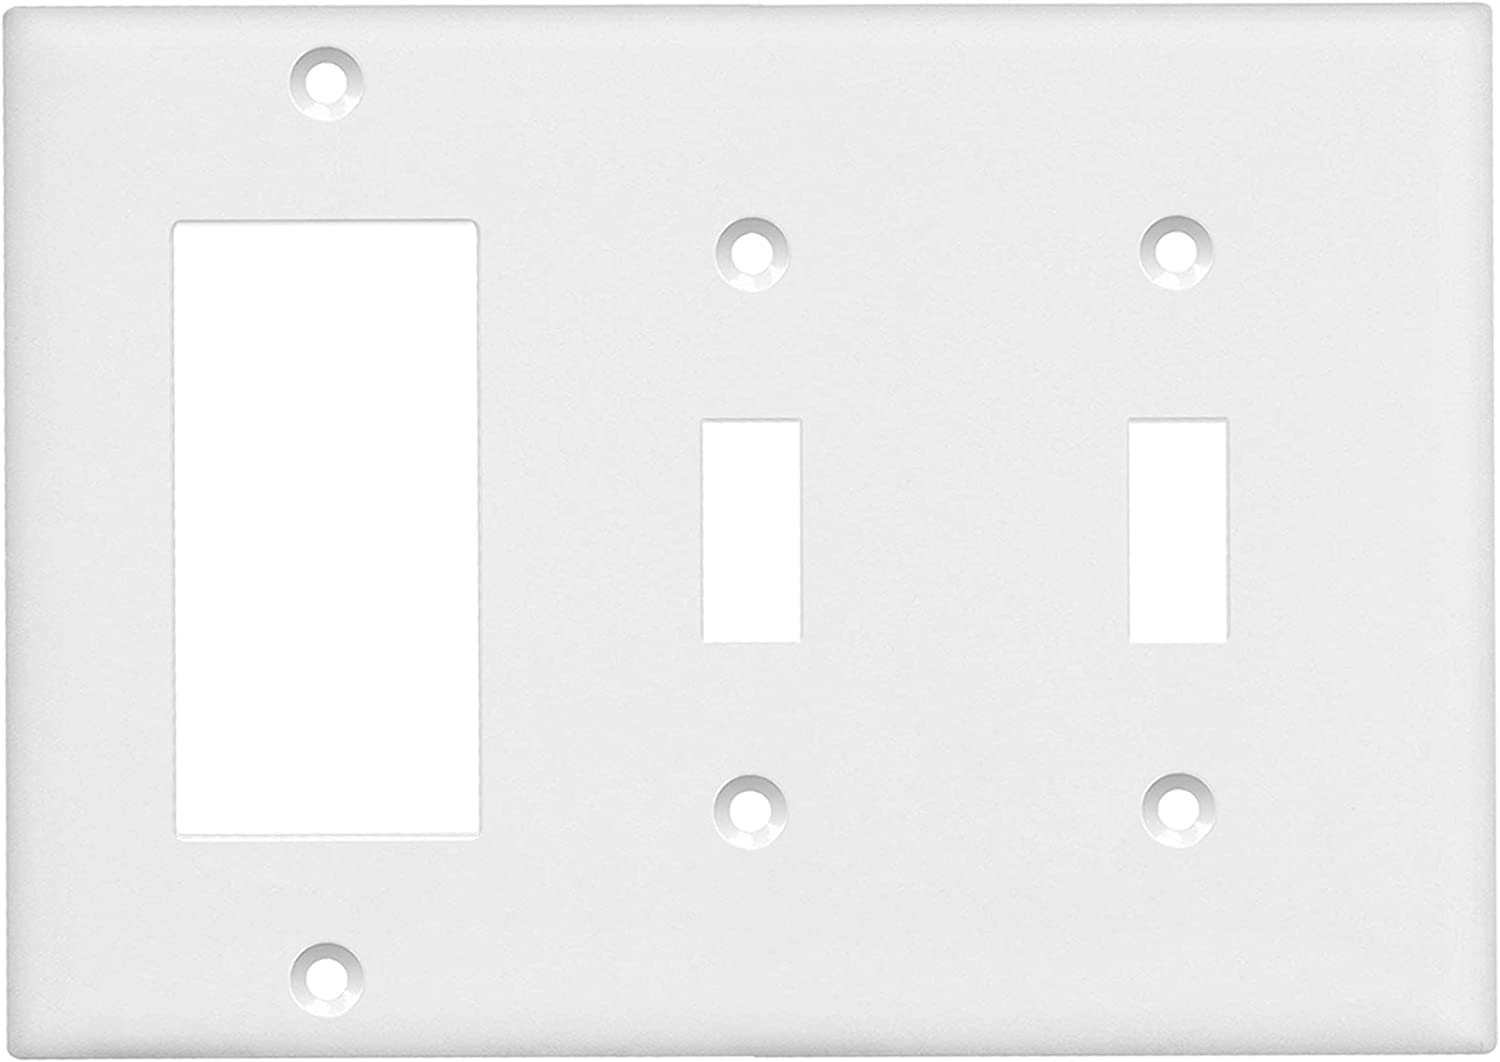 ENERLITES Combination Wall Plate (Double Toggle/Single Decorator Switch), Standard Size 3-Gang, Polycarbonate Thermoplasic, White 881231-W, Two One